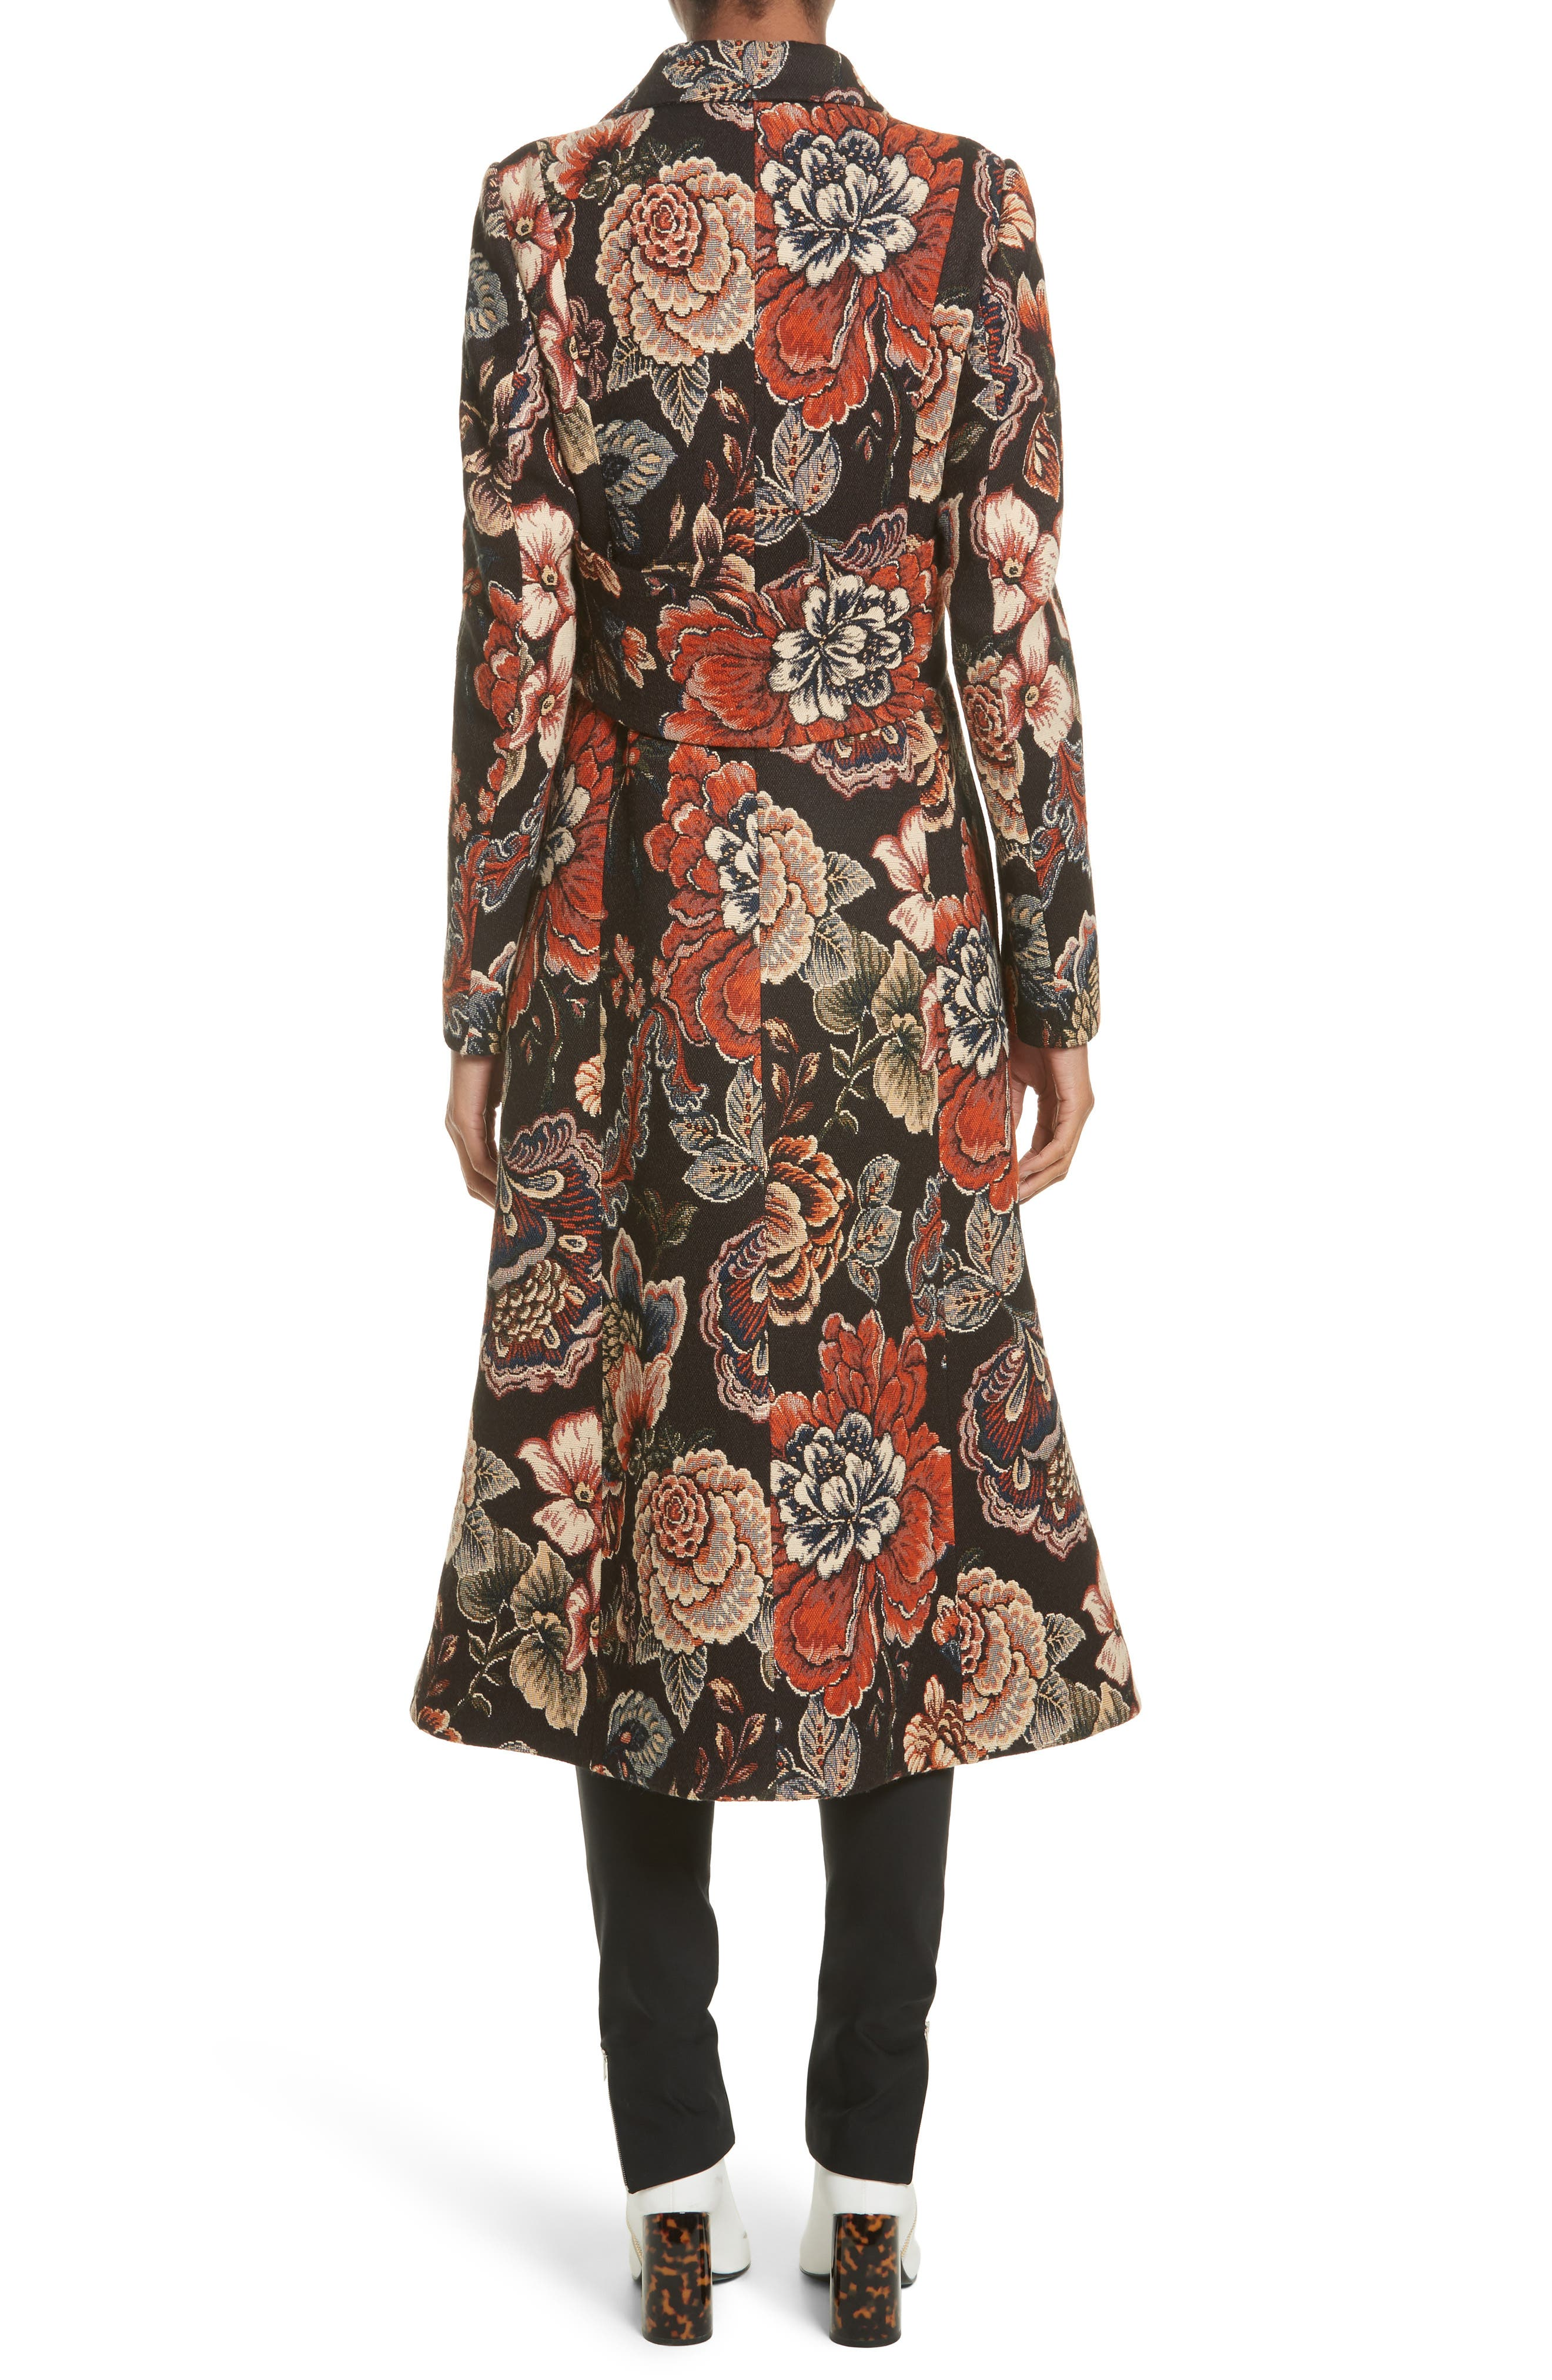 STELLA MCCARTNEY, Floral Tapestry Long Coat, Alternate thumbnail 2, color, 960